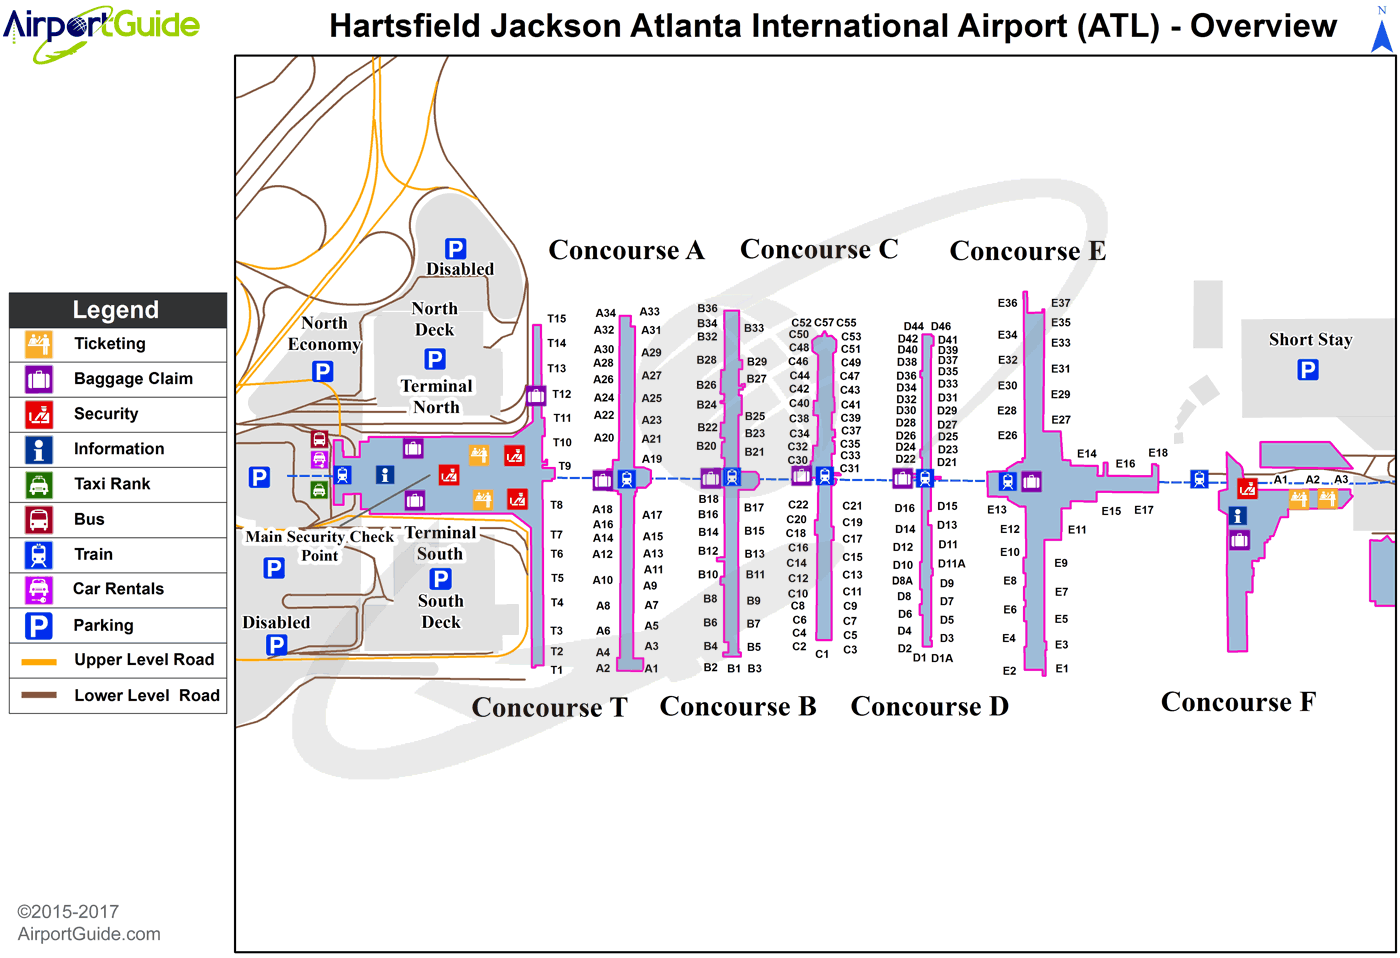 Atlanta Airport Domestic Terminal Map Atlanta   Hartsfield   Jackson Atlanta International (ATL) Airport